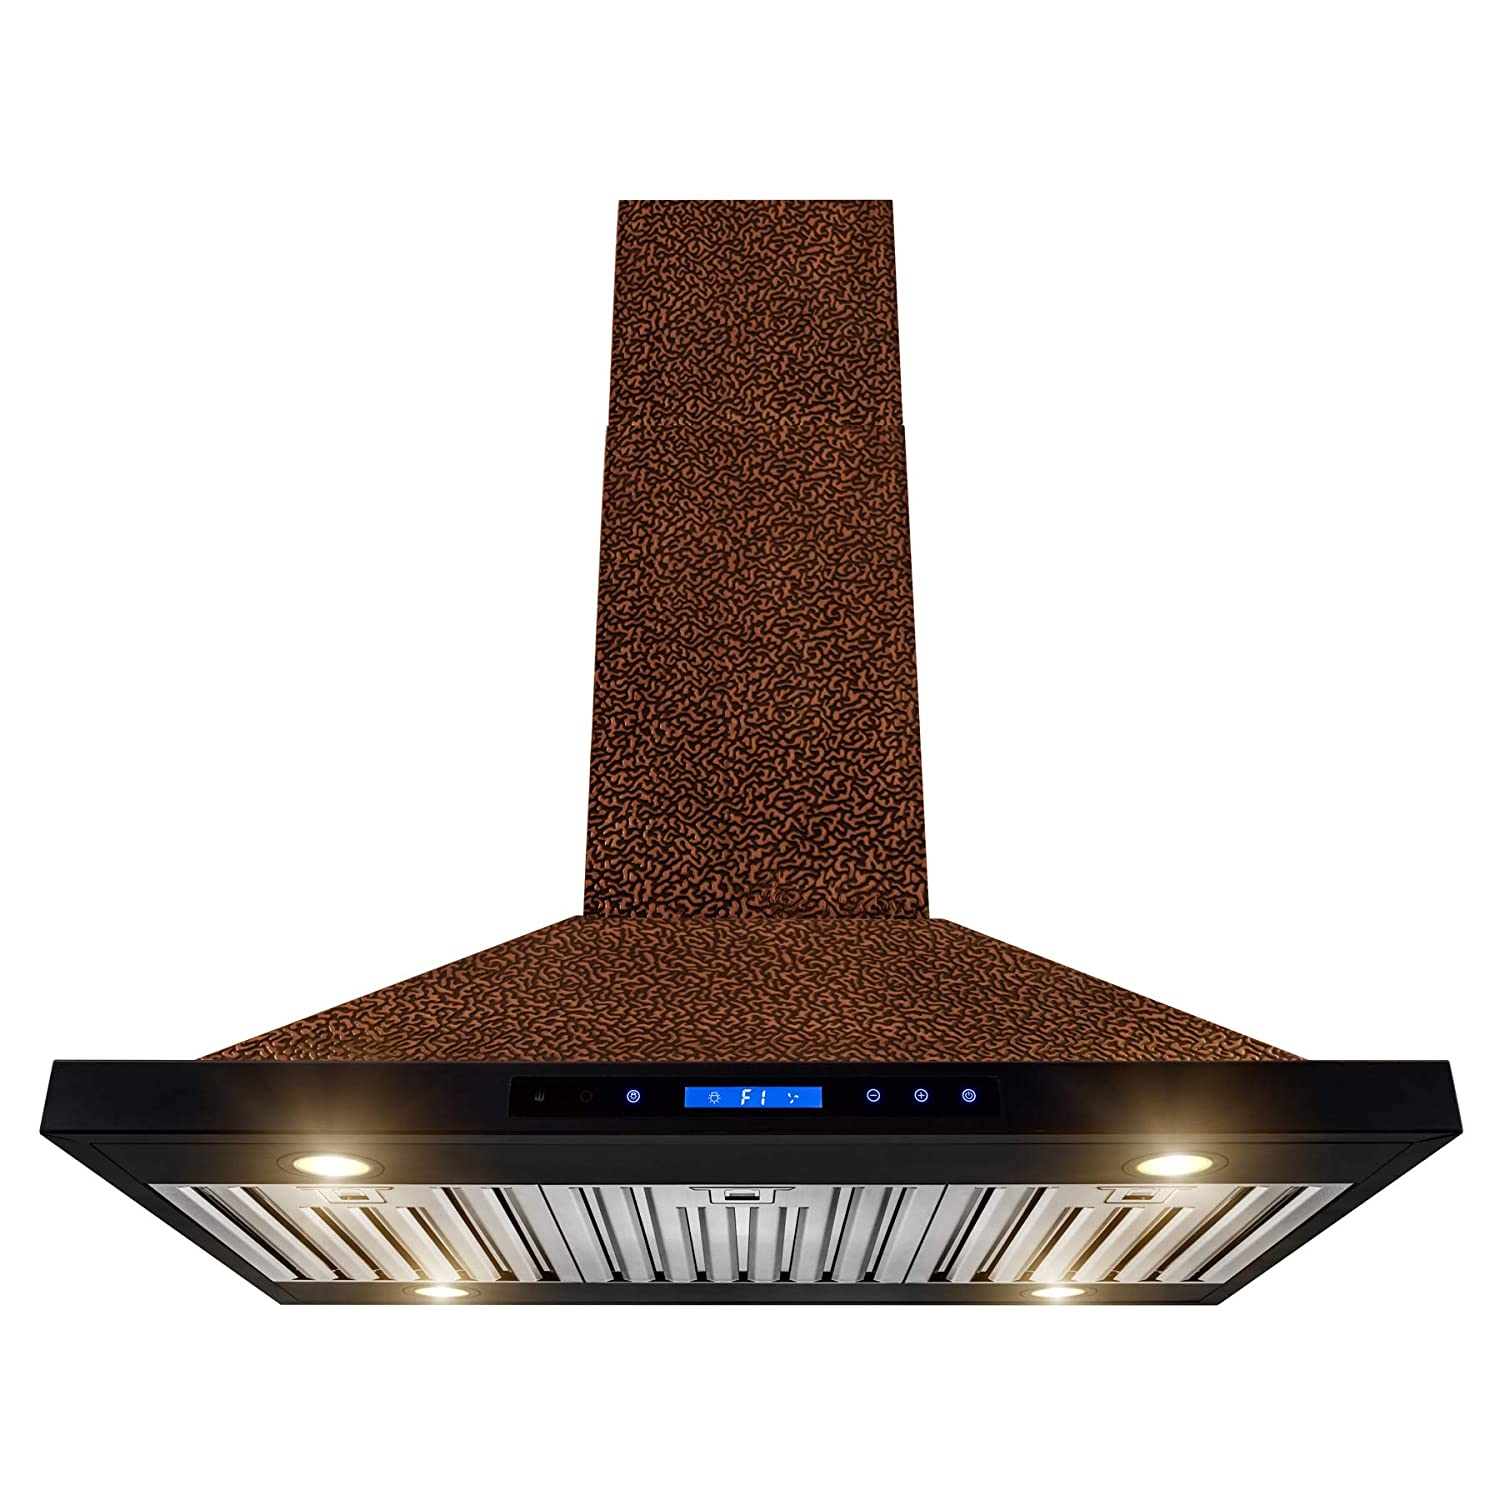 "AKDY Island Mount Range Hood –36"" Embossed Copper Hood Fan for Kitchen – 4-Speed Professional Quiet Motor – Touch Control Panel – Modern Design – Dishwasher-Safe Baffle Filters"